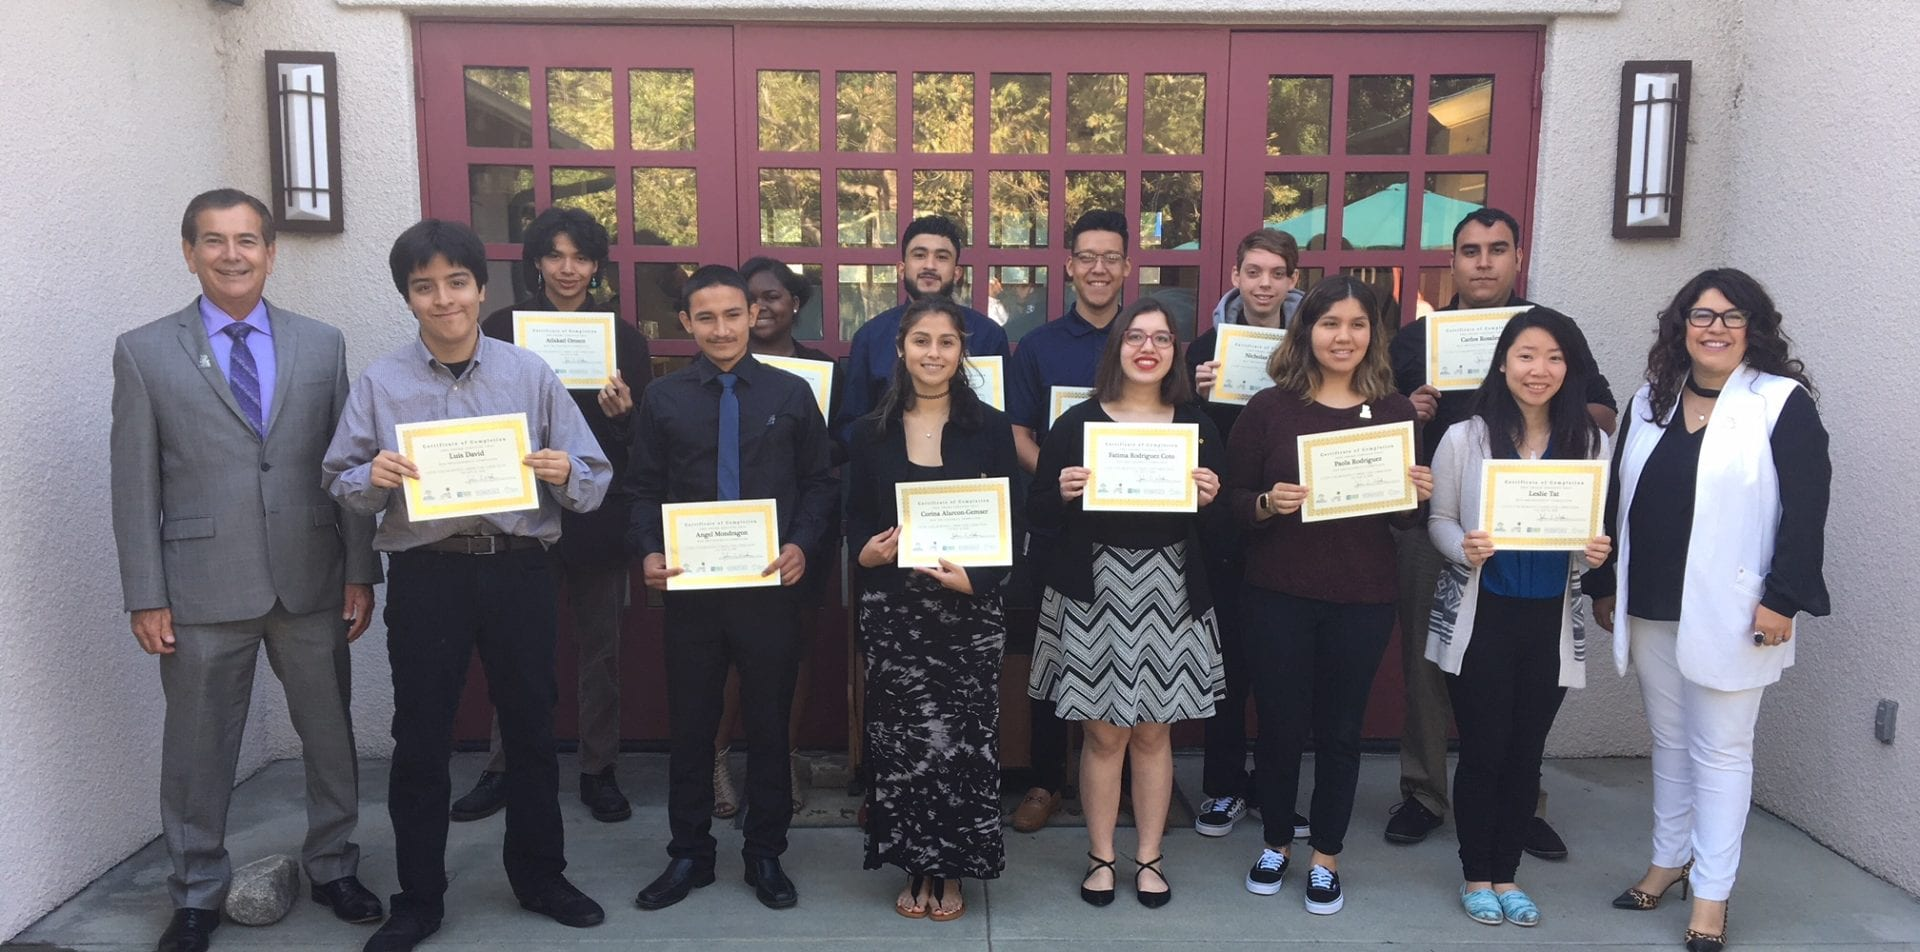 Group photo. Students holding certs